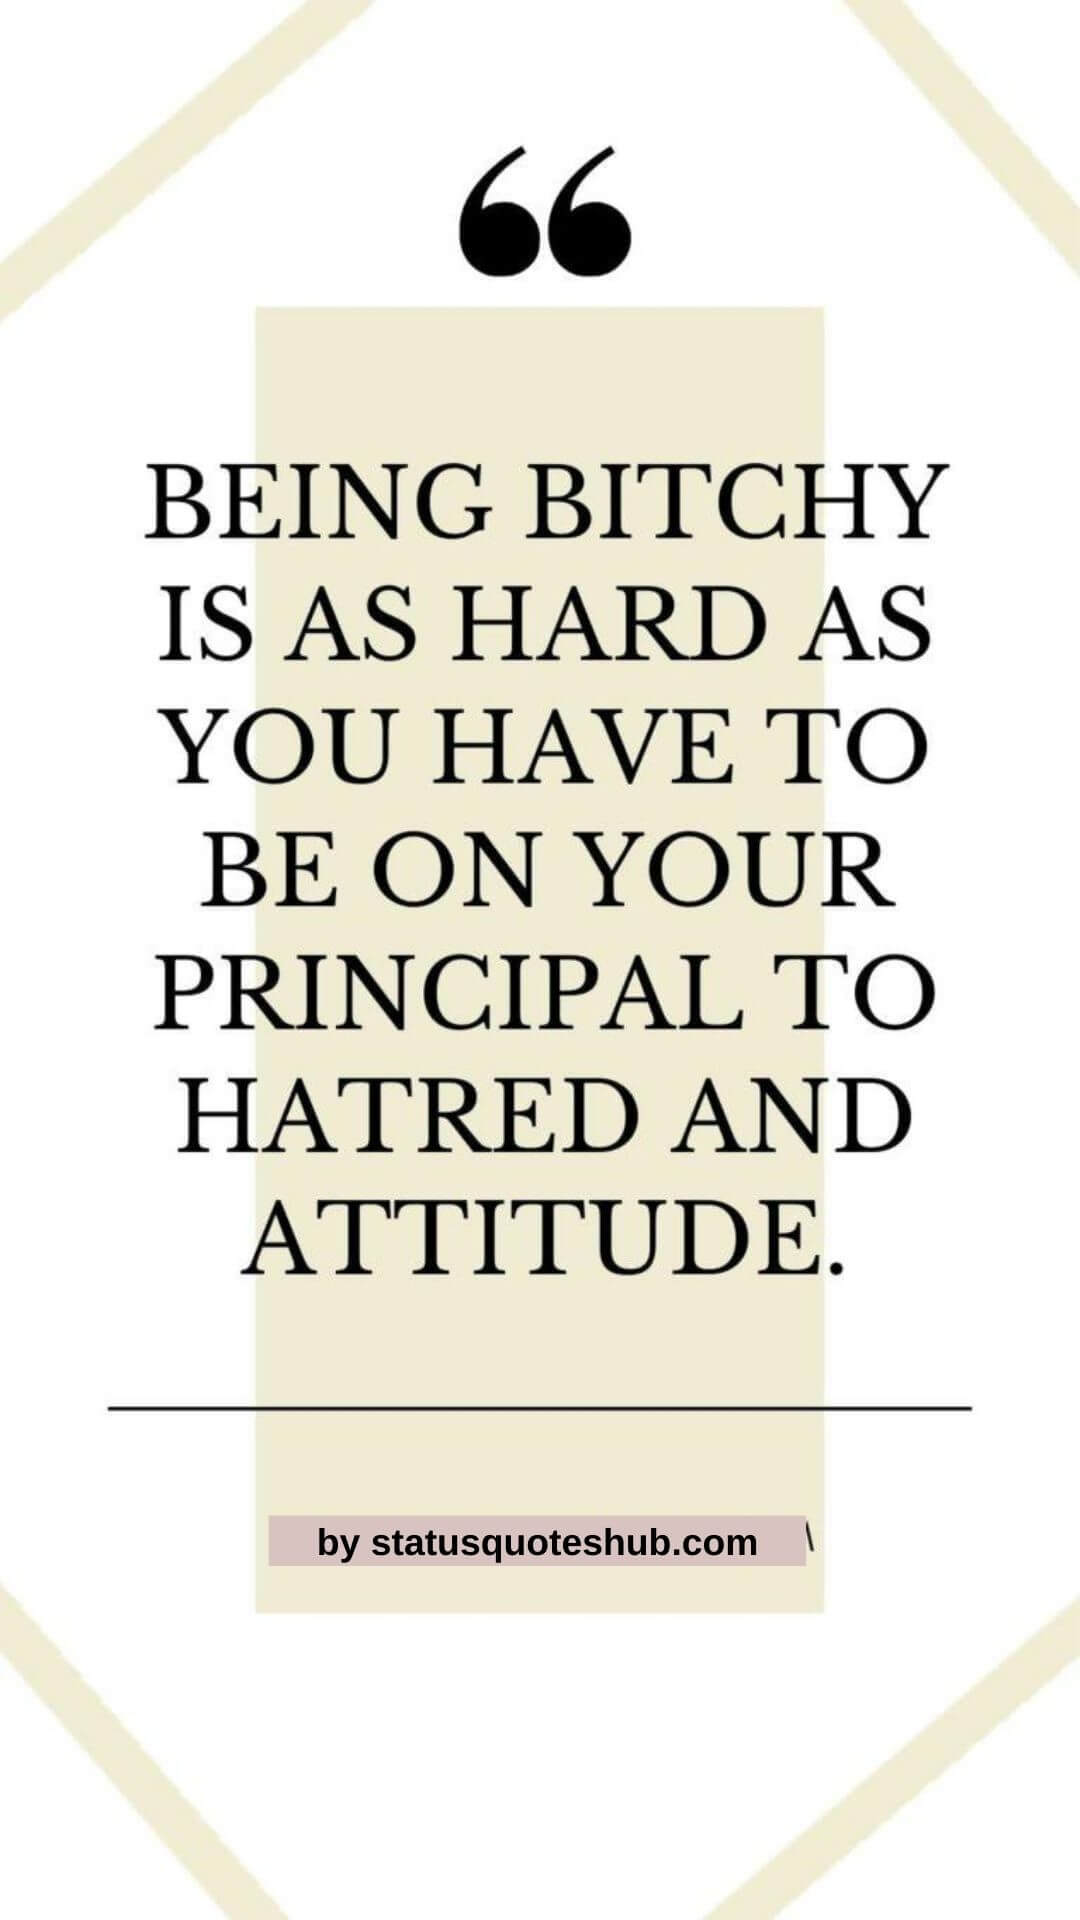 status for a bitch with attitude